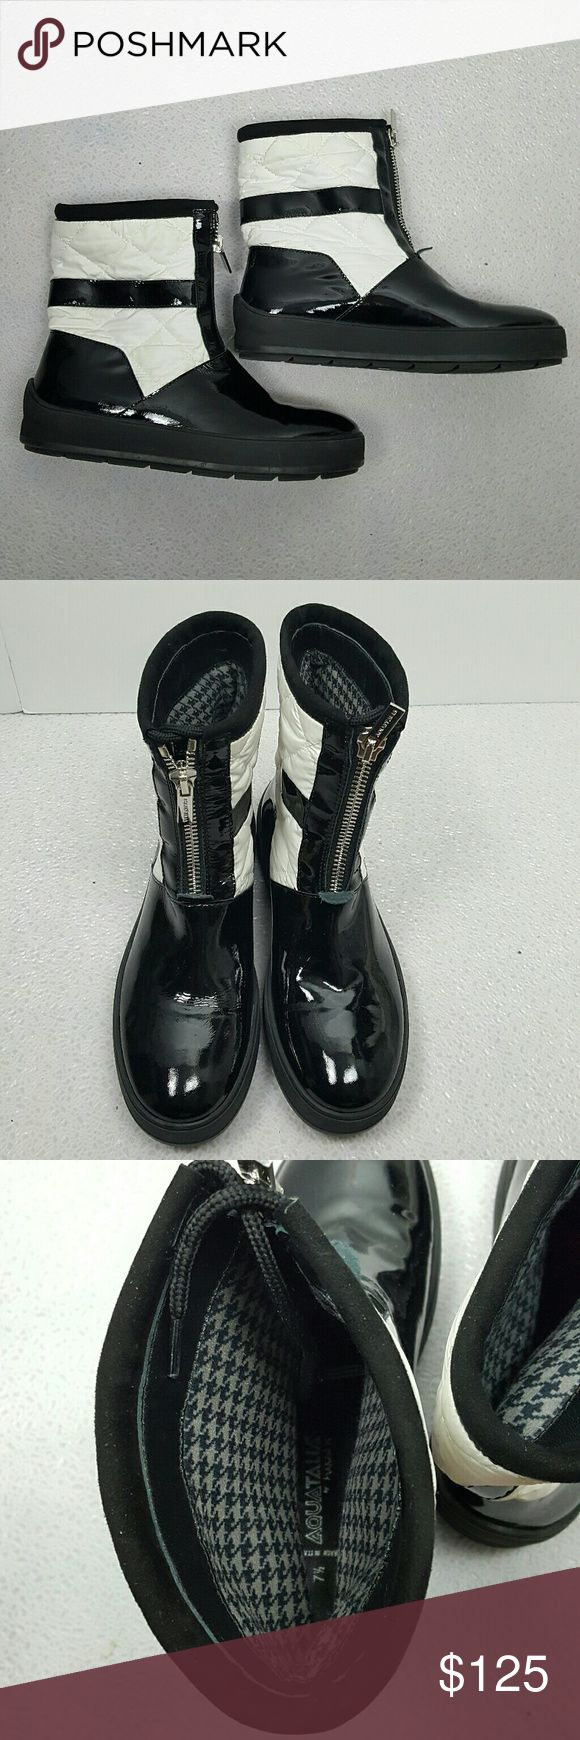 AQUATALIA black and white quilted boots New never been worn Aquatalia  Shoes Ankle Boots & Booties